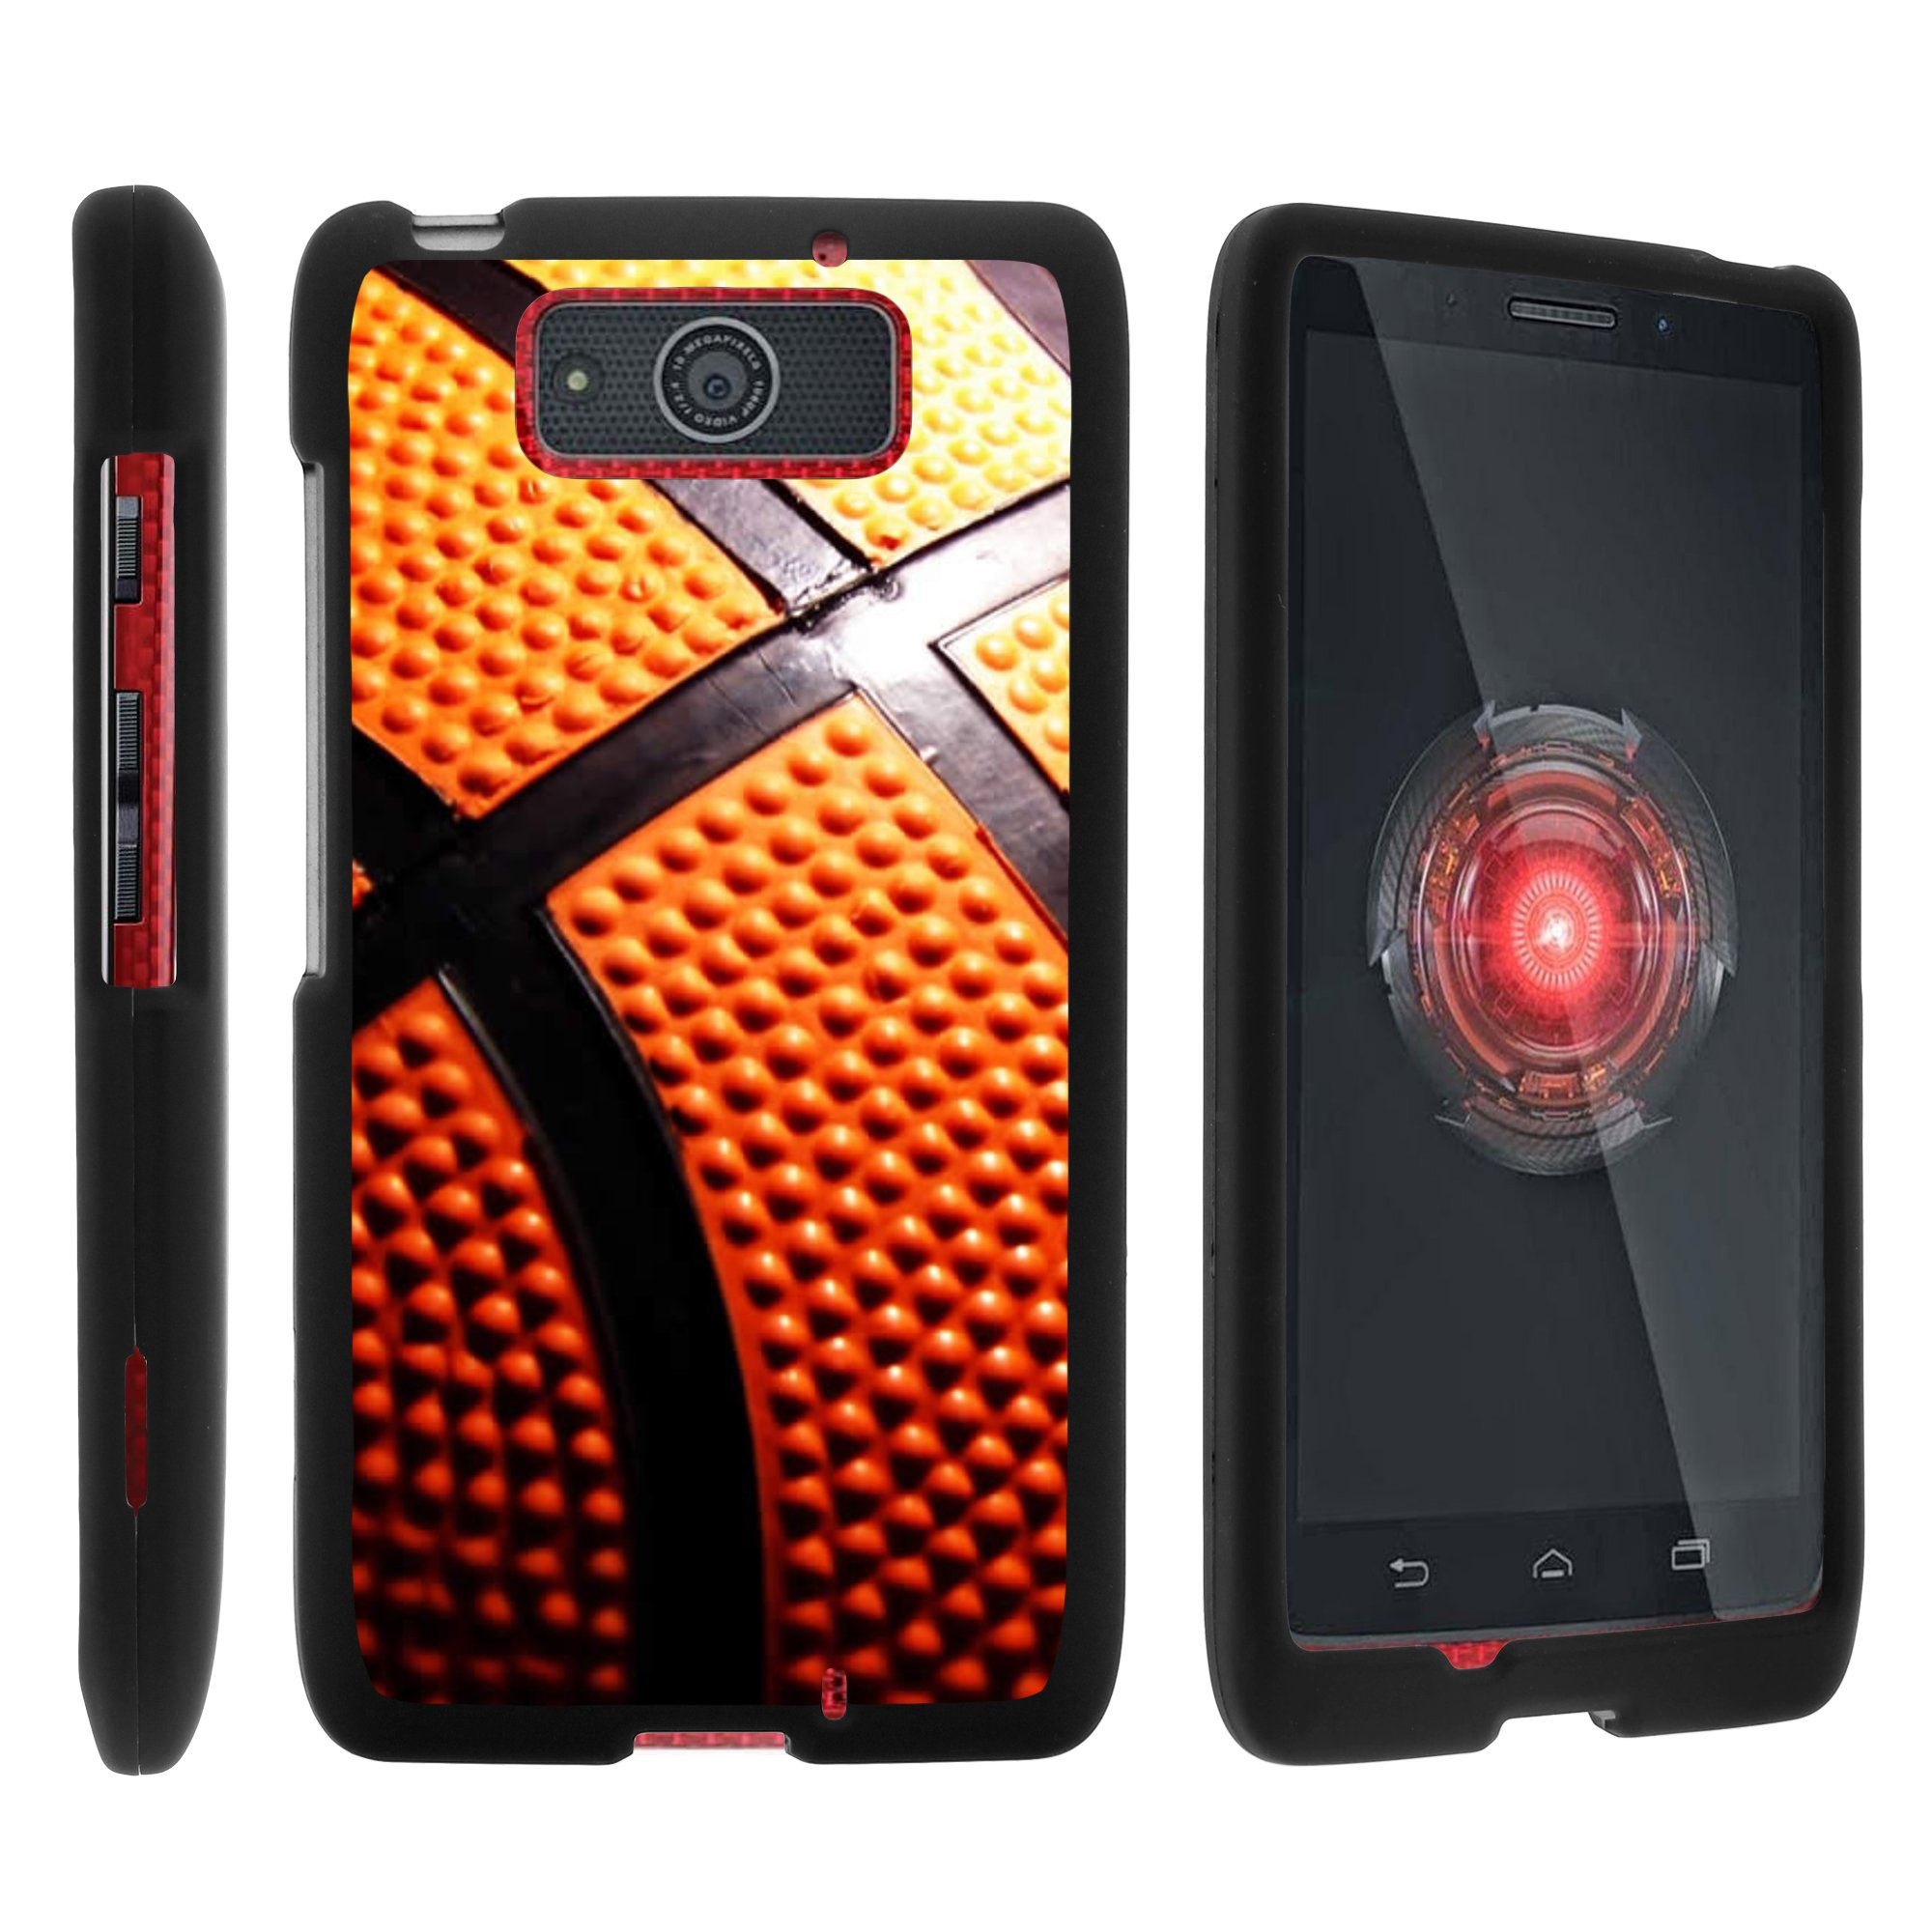 Motorola Droid Ultra XT1080 | Droid Maxx XT1080-M, [SNAP SHELL][Matte Black] 2 Piece Snap On Rubberized Hard Plastic Cell Phone Case with Exclusive Art - Close Up Basketball